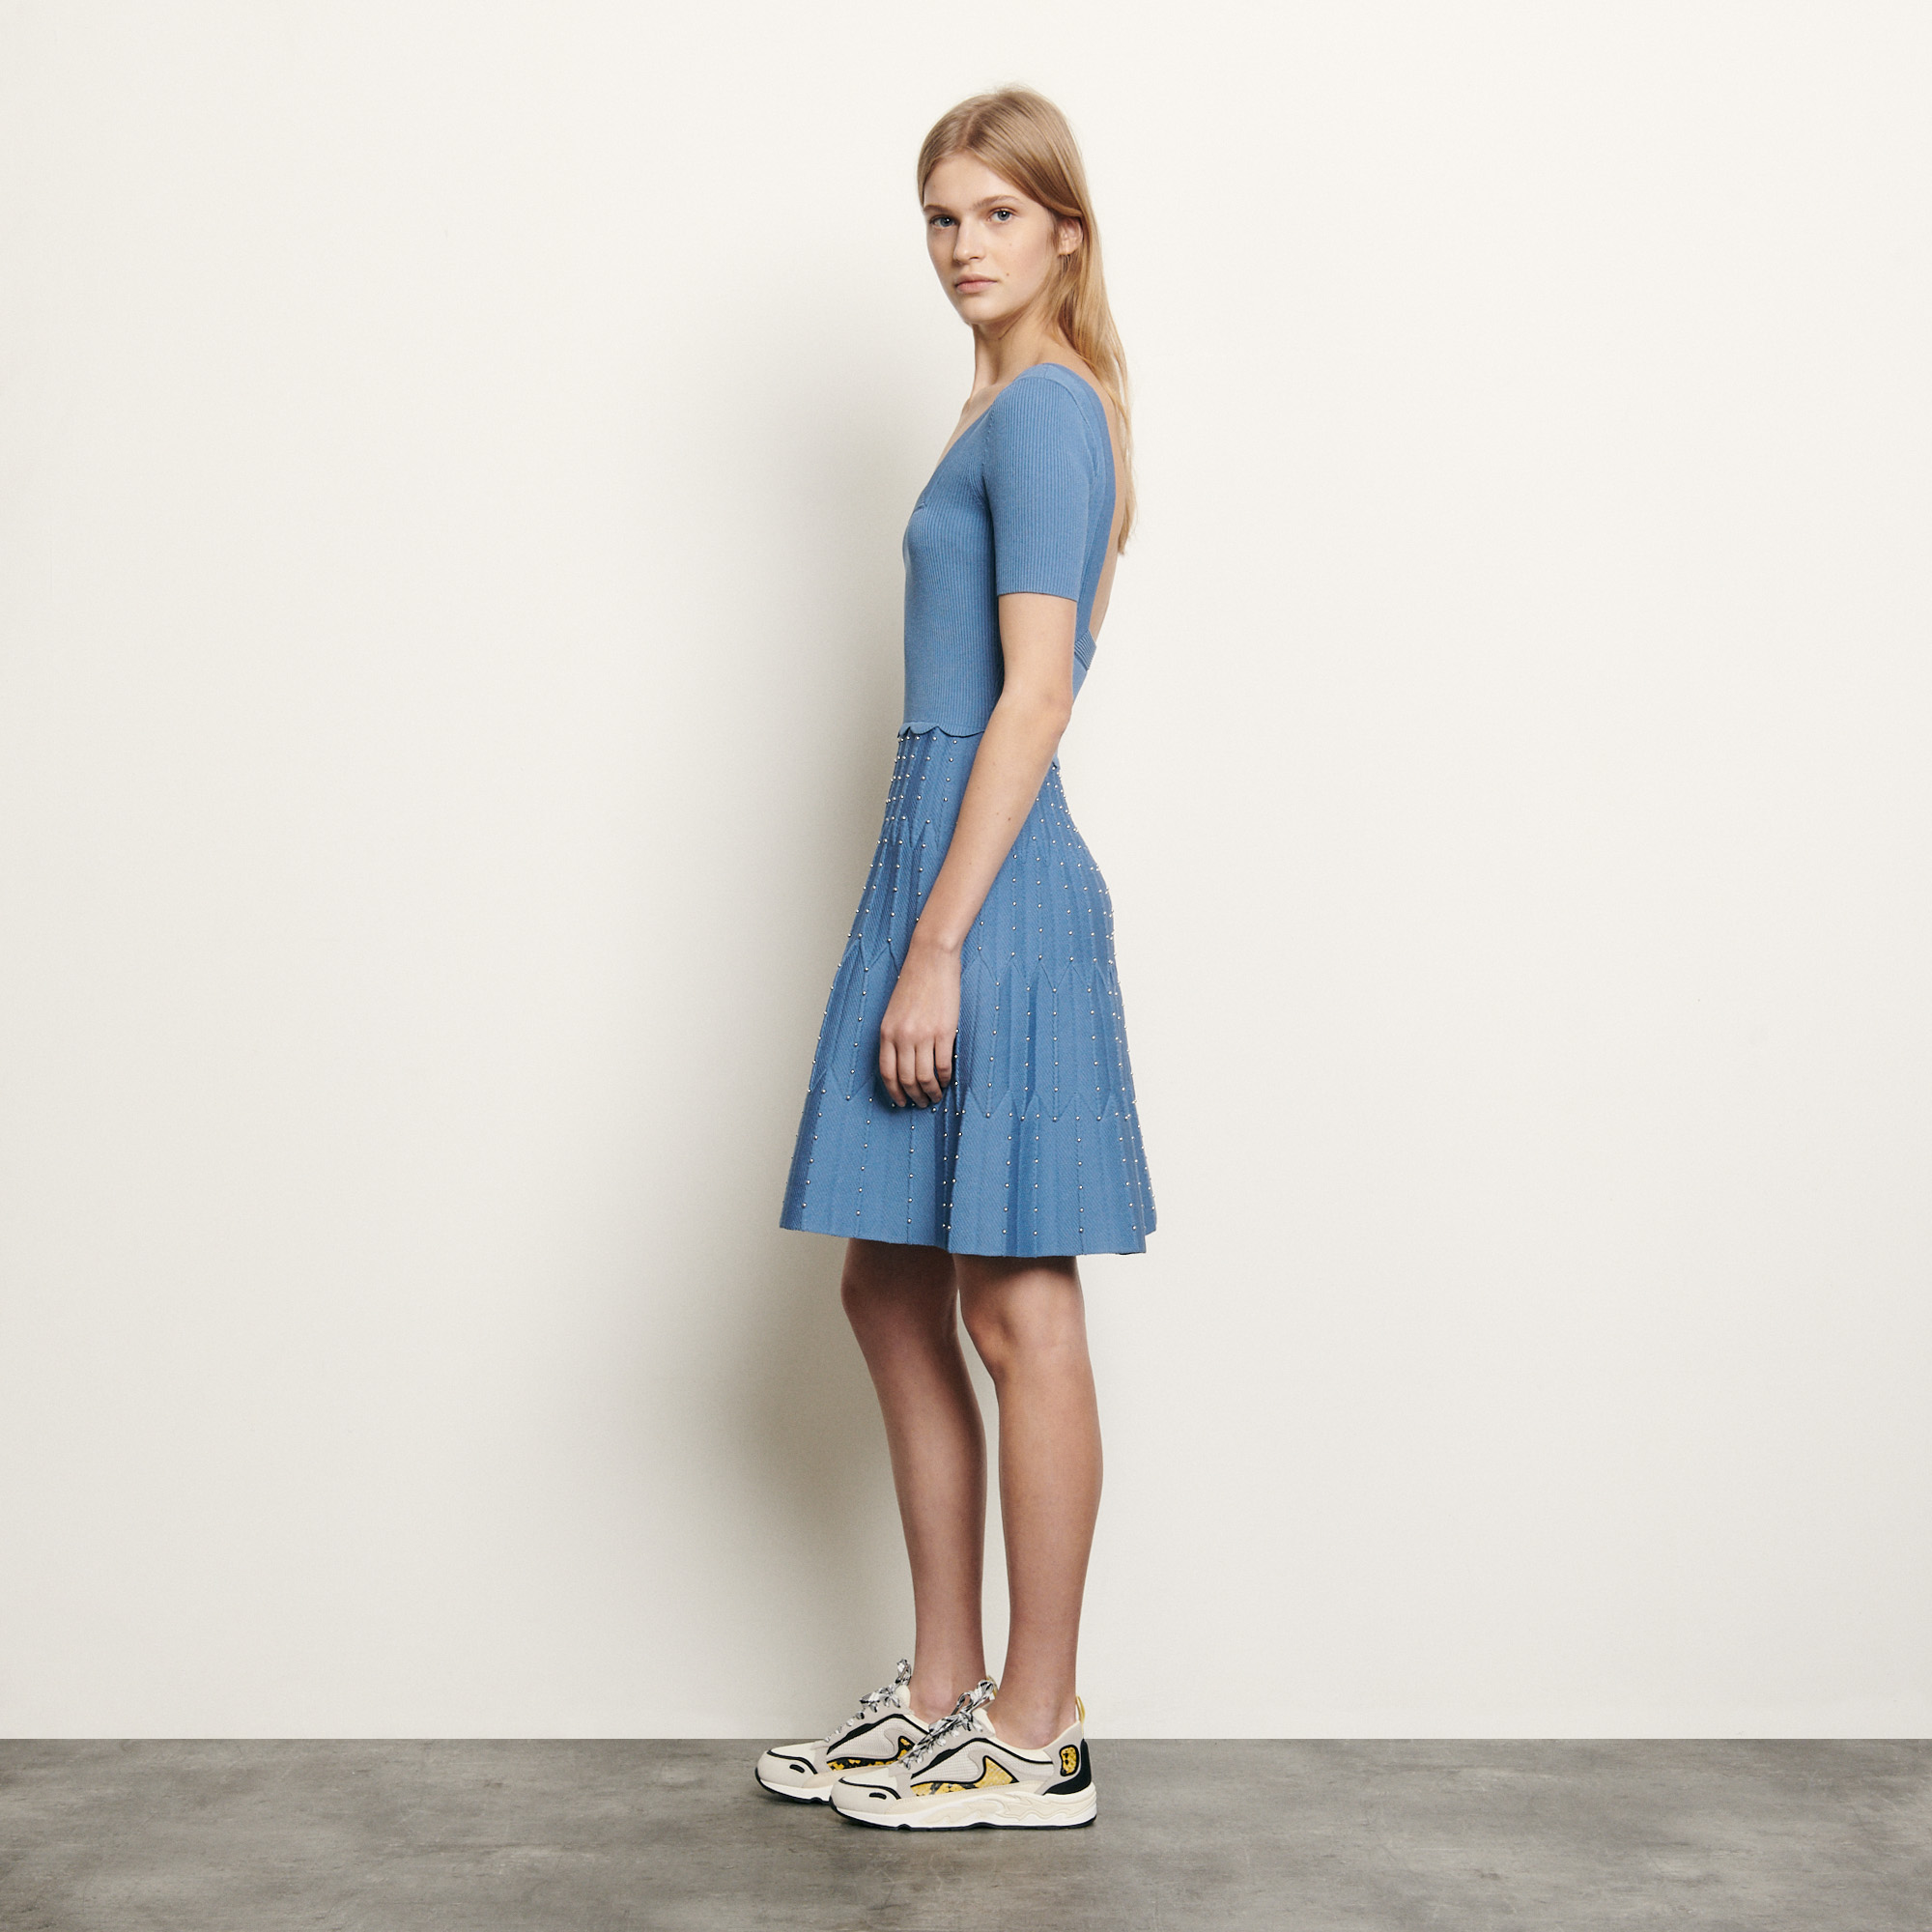 Knit dress with square neckline - Blue